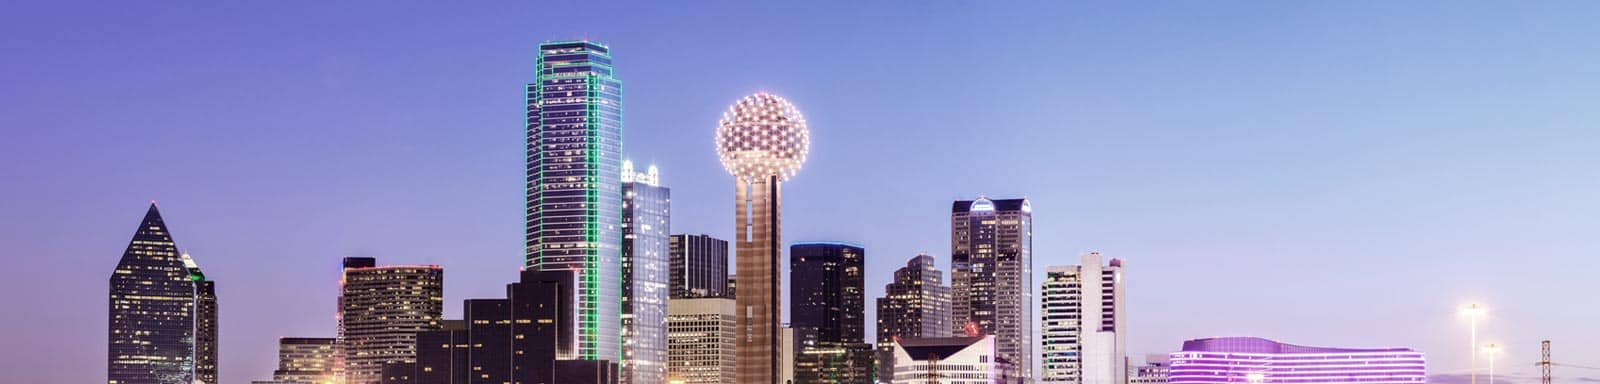 Dallas Skyline Image